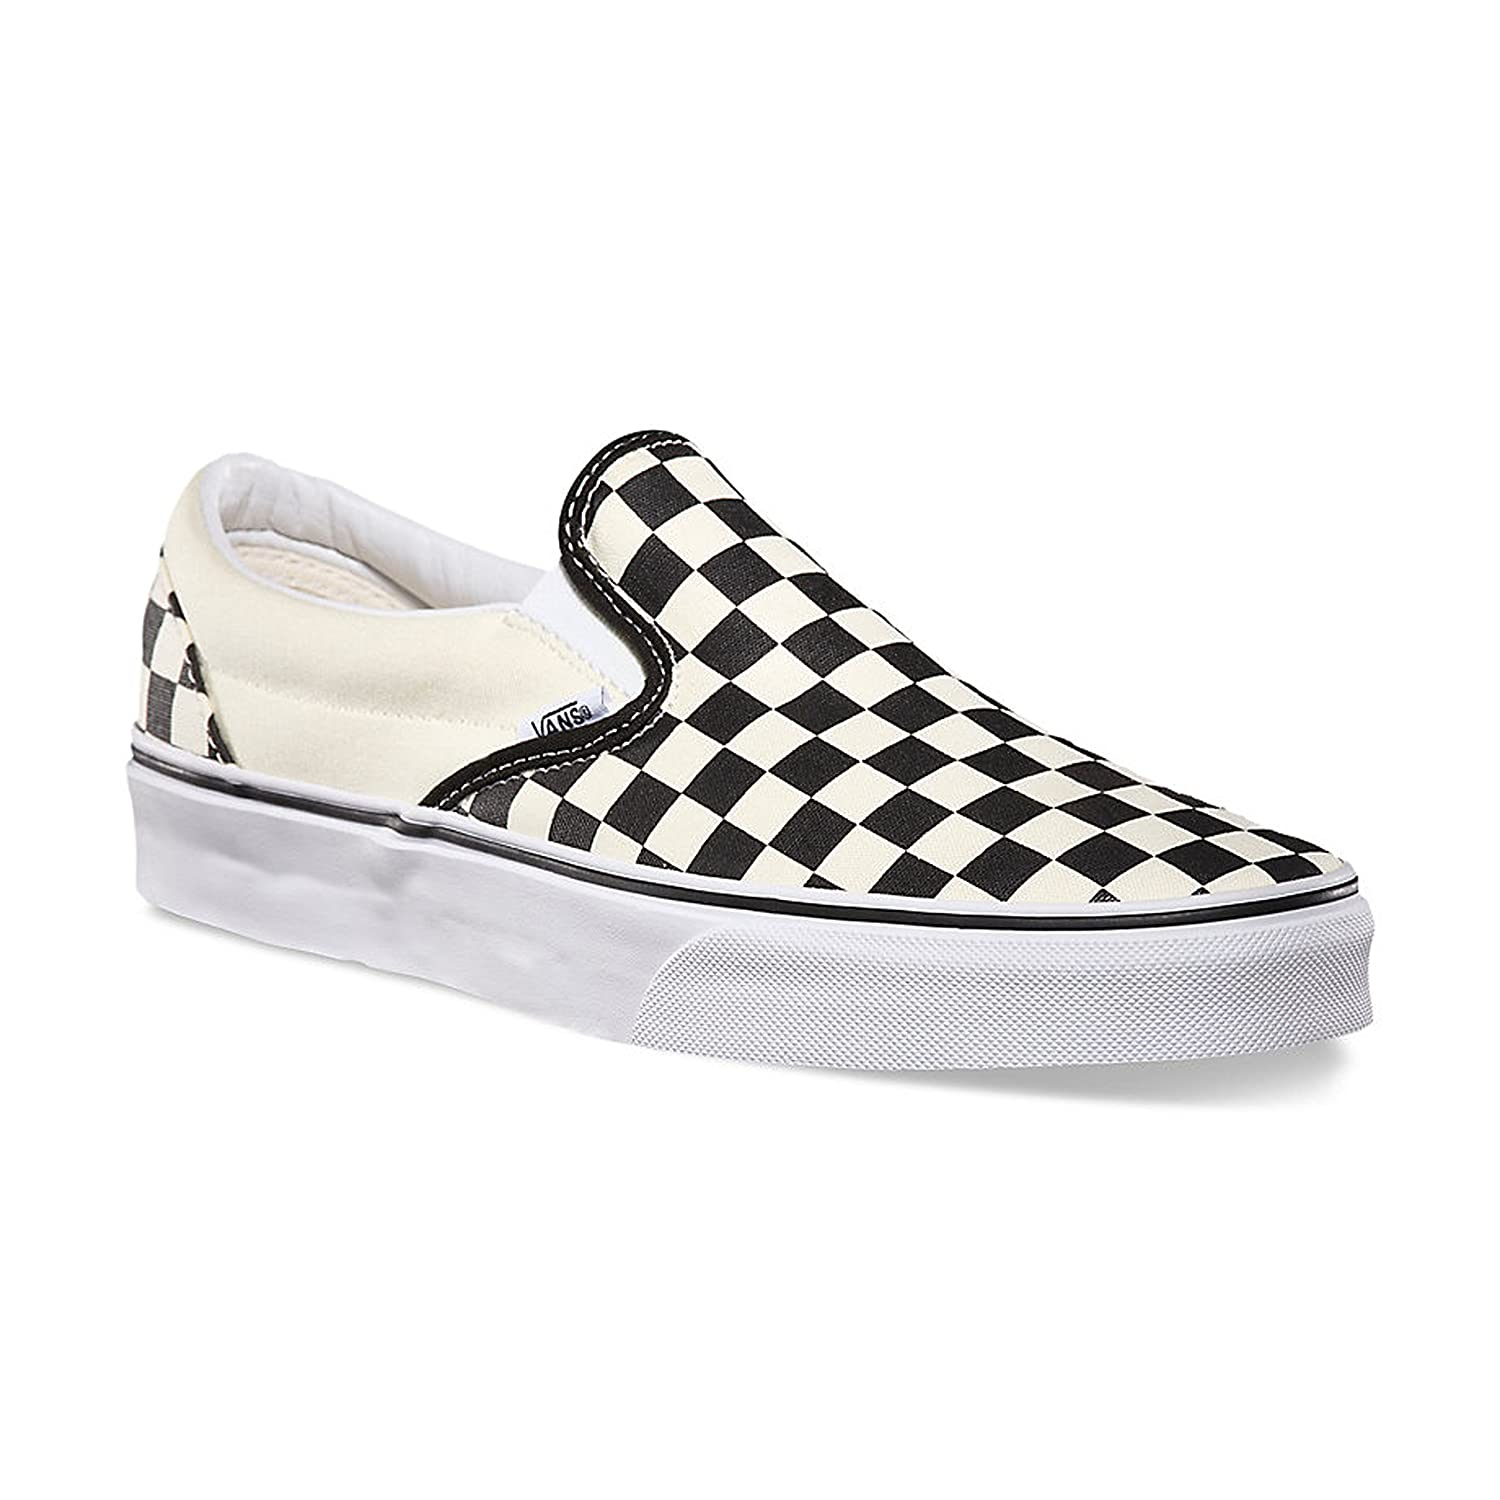 [バンズ] VANS スニーカー Classic Slip-on B0753WMBDD 11 B(M) US Women / 9.5 D(M) US Men Black Off White Checkerboard